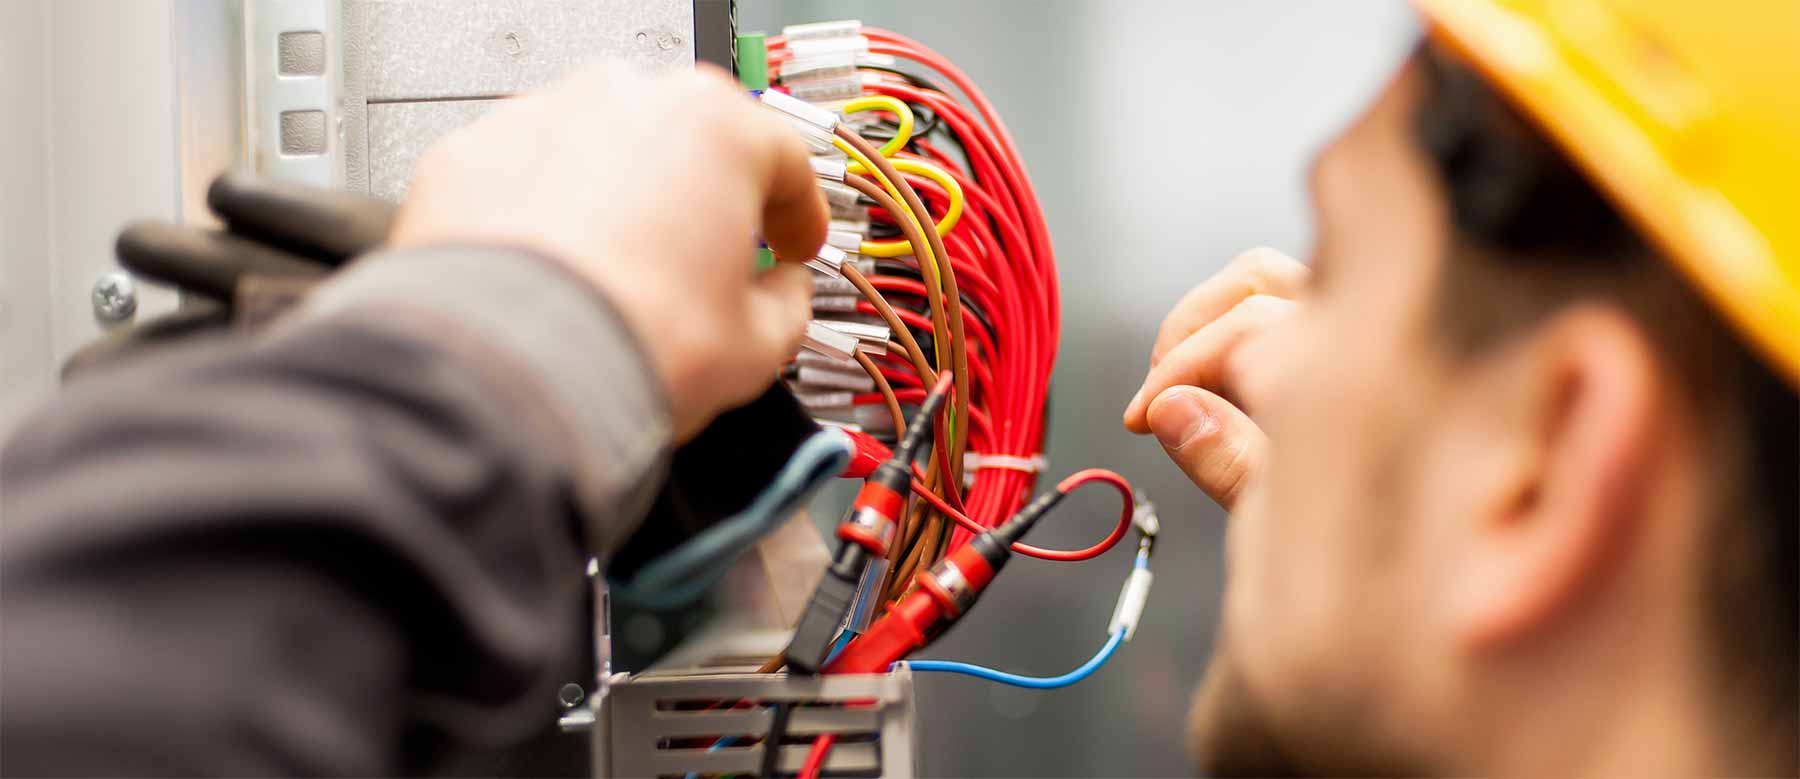 Trades College Australia - Electrotechnology Cert III